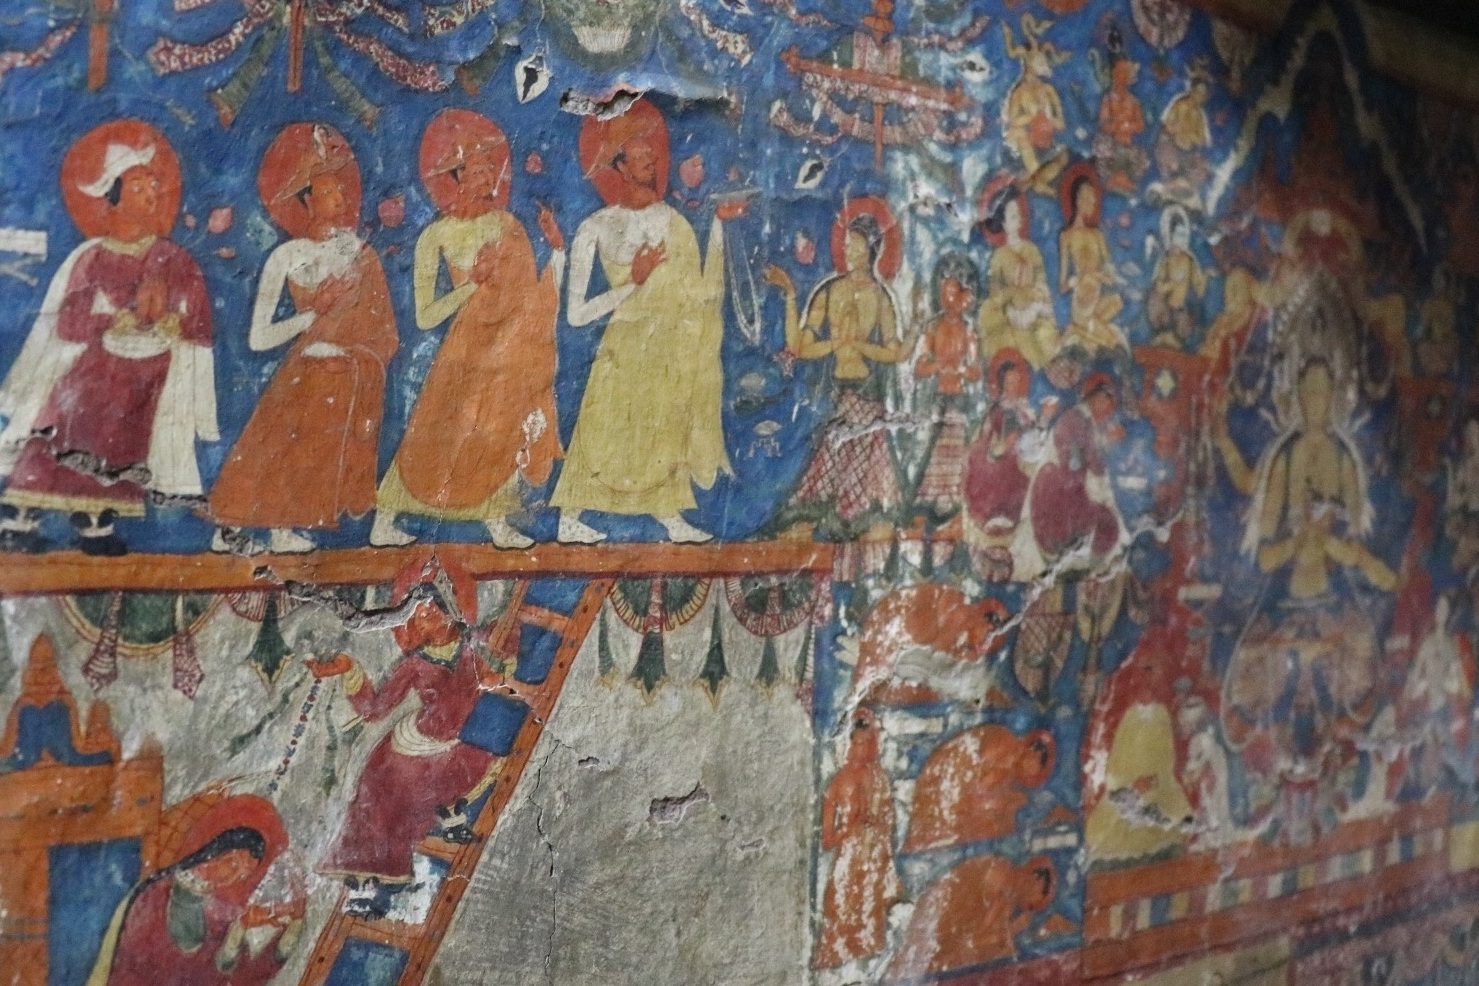 Alchi Choskhor - Intricate and colourful murals line the walls here, displaying Buddhist imagery with Silk Road influences.